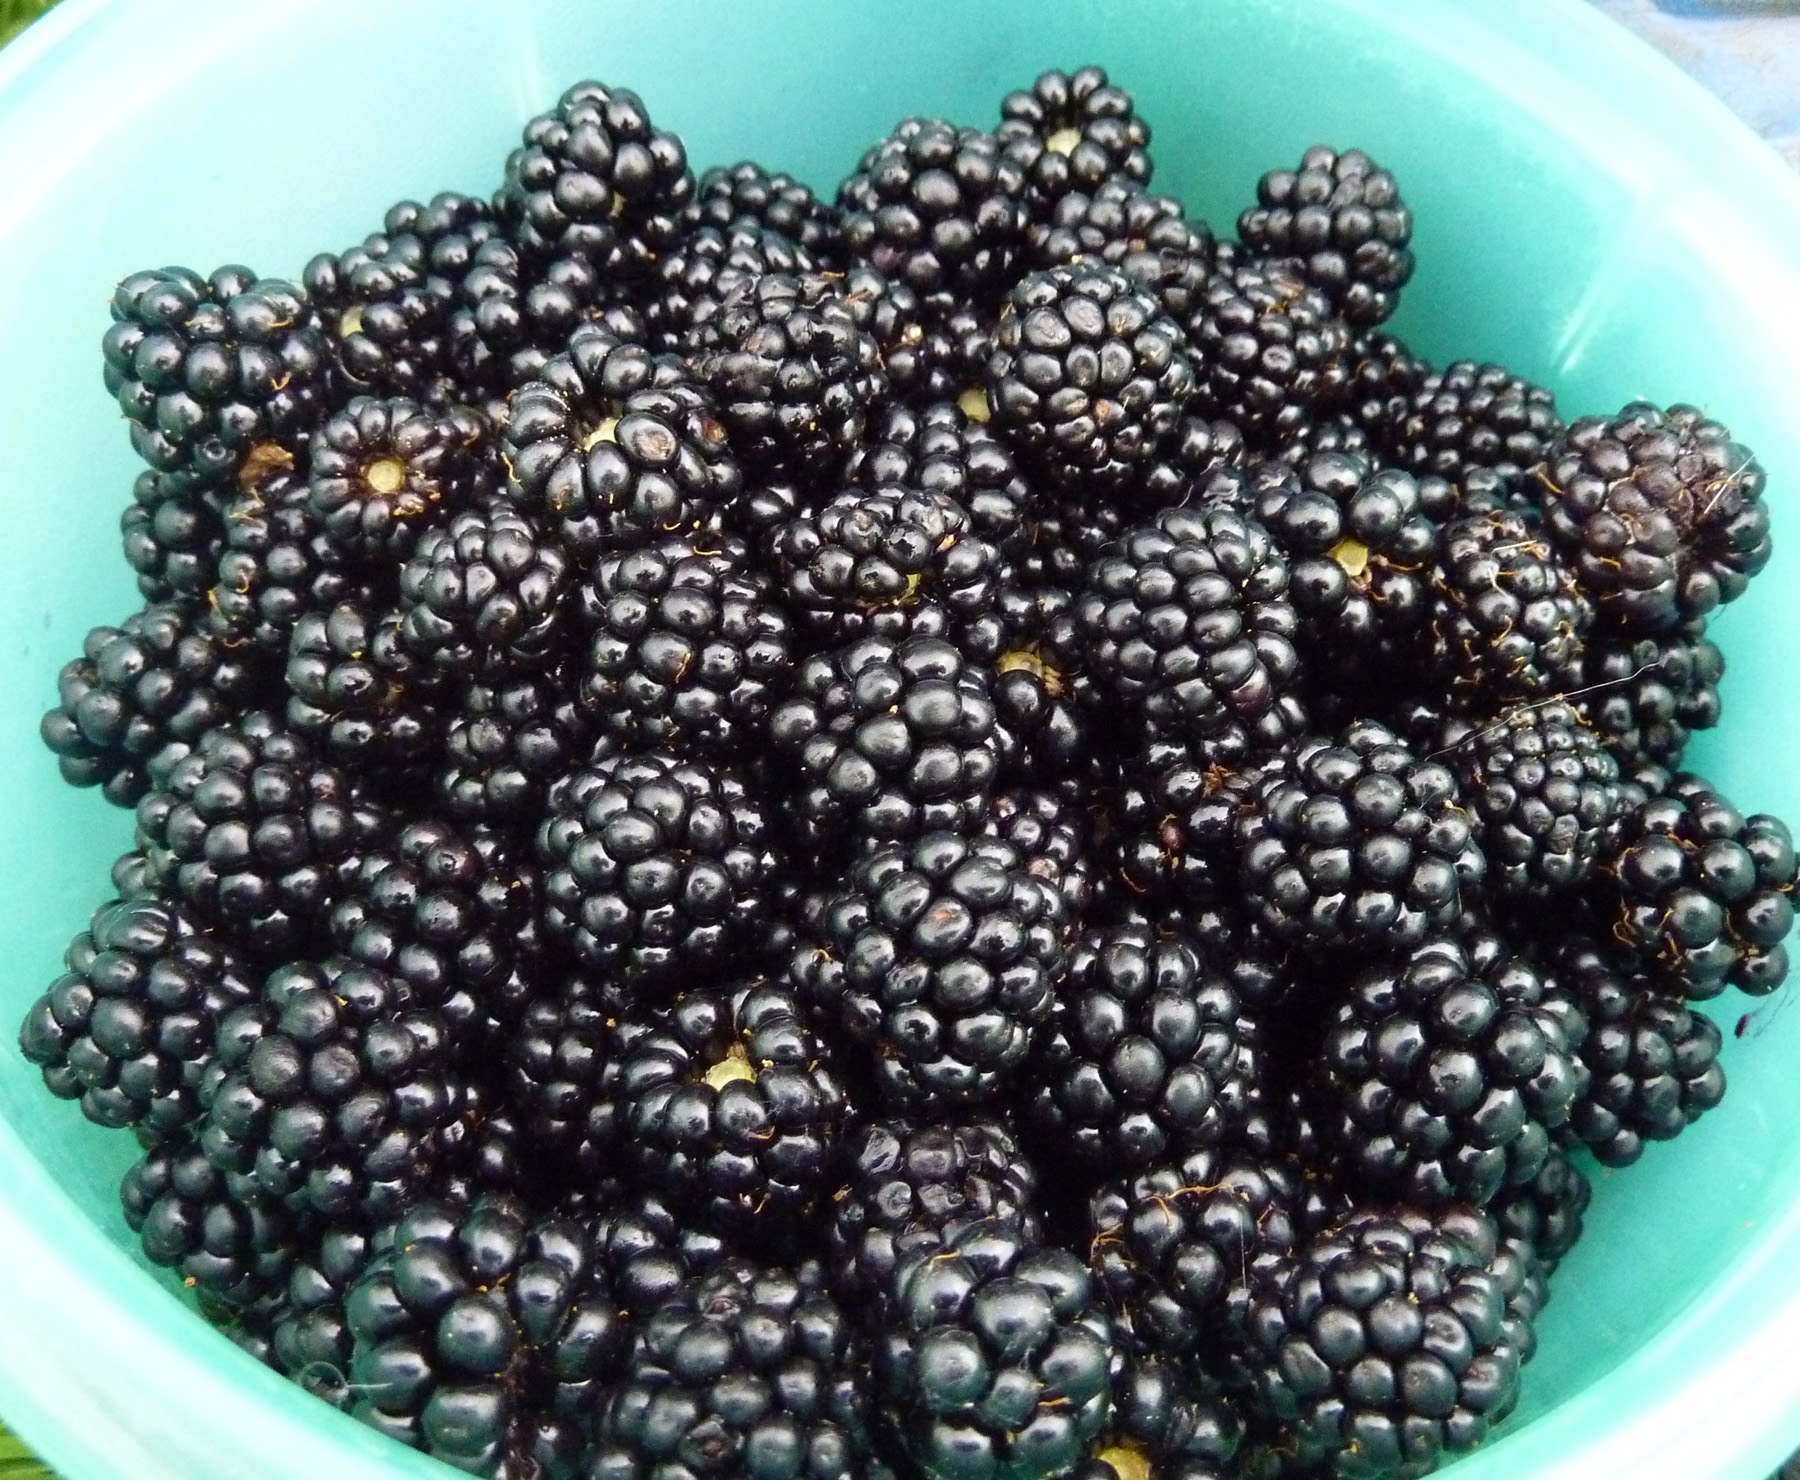 blackberries from the playground